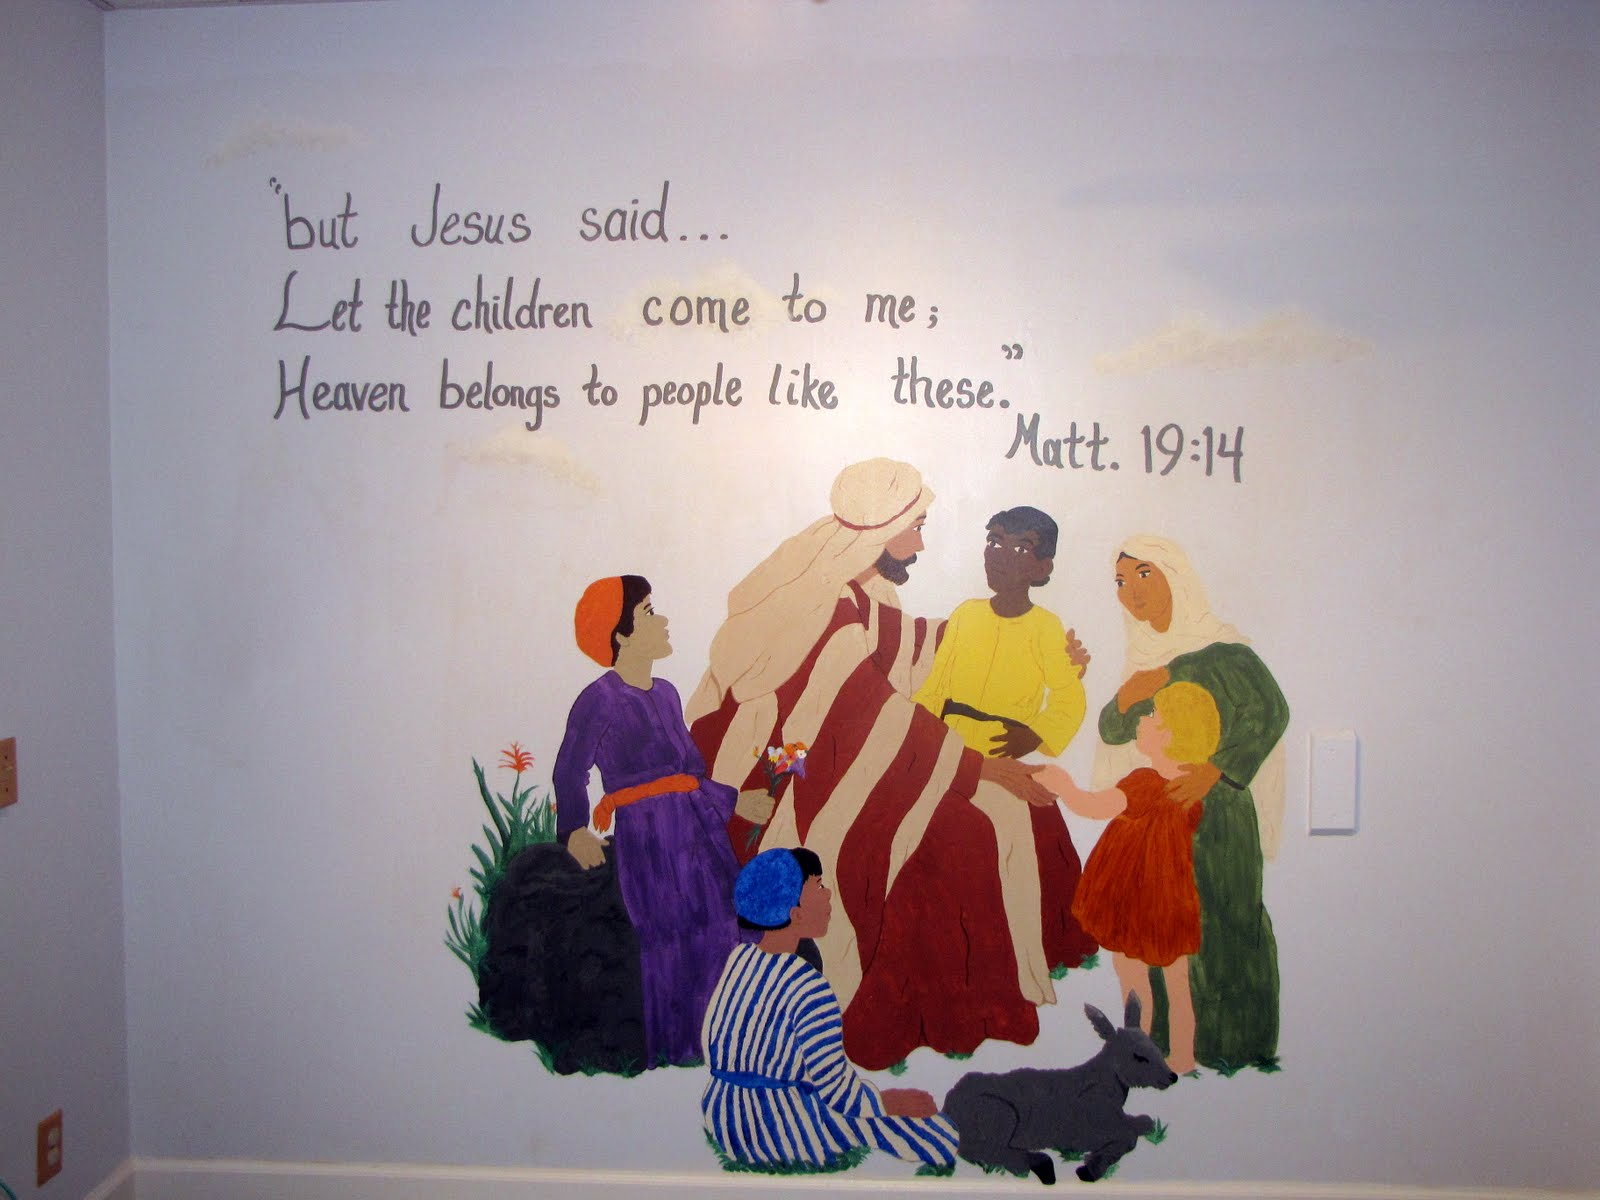 28 church wall murals custom painted church murals by dee church wall murals church nursery wall murals submited images